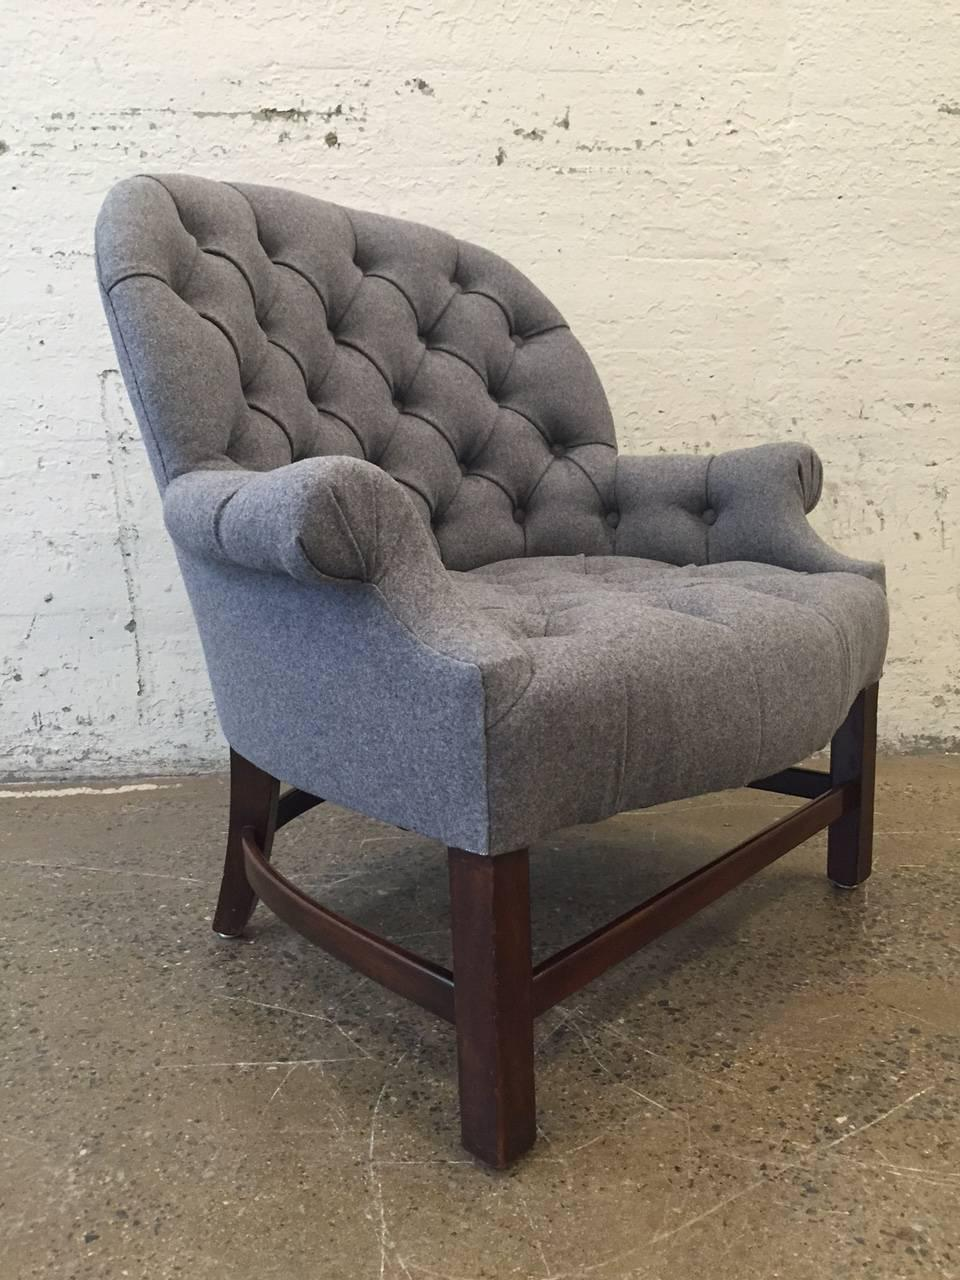 Tufted Chair And Ottoman - Leather Tufted Chair And ...